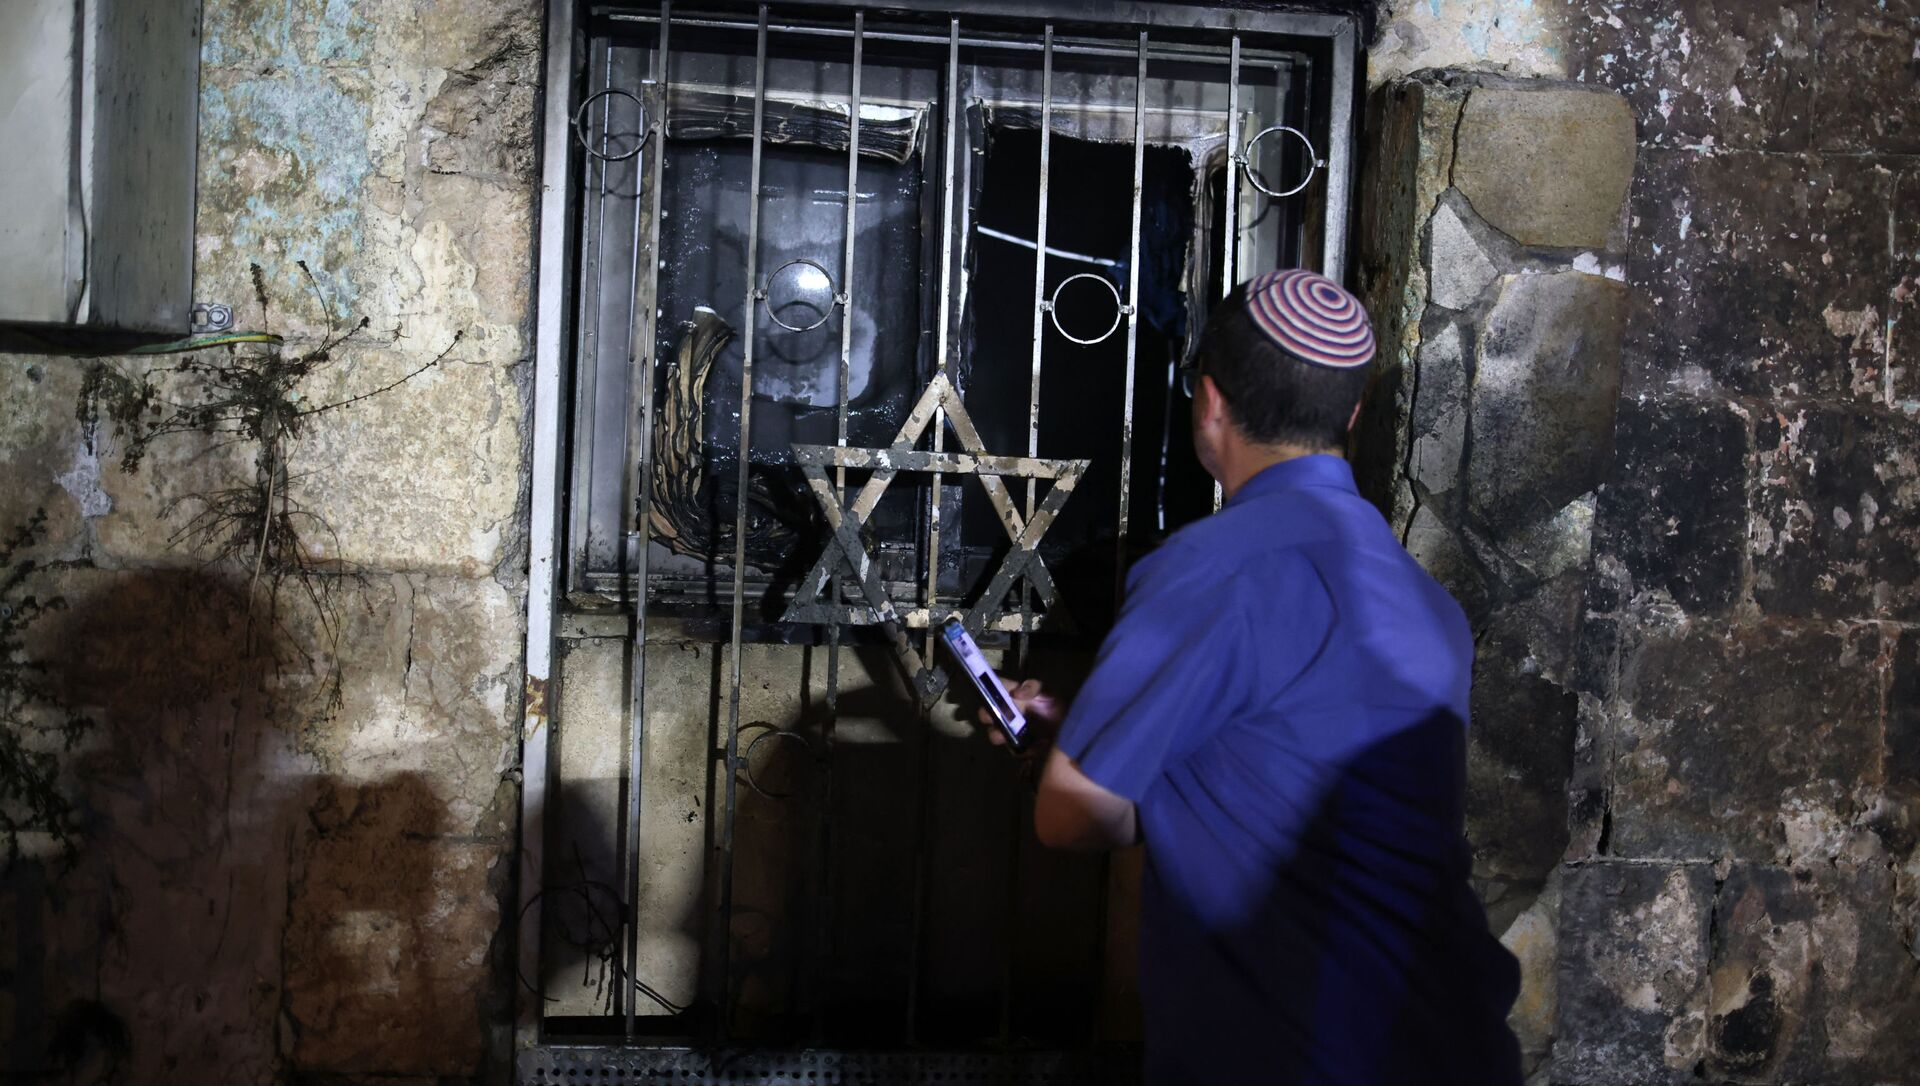 An Israeli man looks inside a synagogue, after it was set on fire by Arab-Israelis, in the mixed Jewish-Arab city of Lod on May 14, 2021, during clashes between Israeli far-right extremists and Arab-Israelis - Sputnik Italia, 1920, 14.05.2021